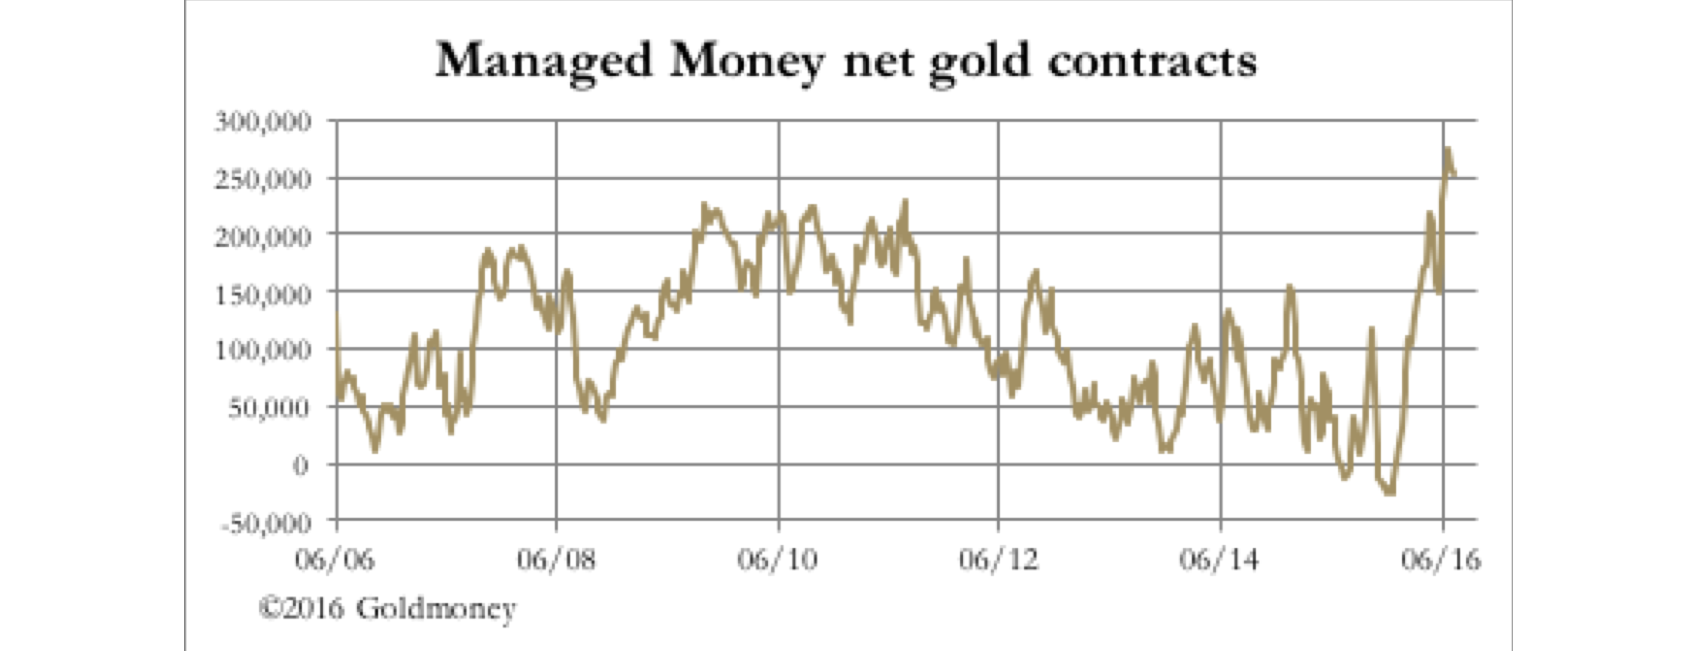 managed_money_net_gold_contracts